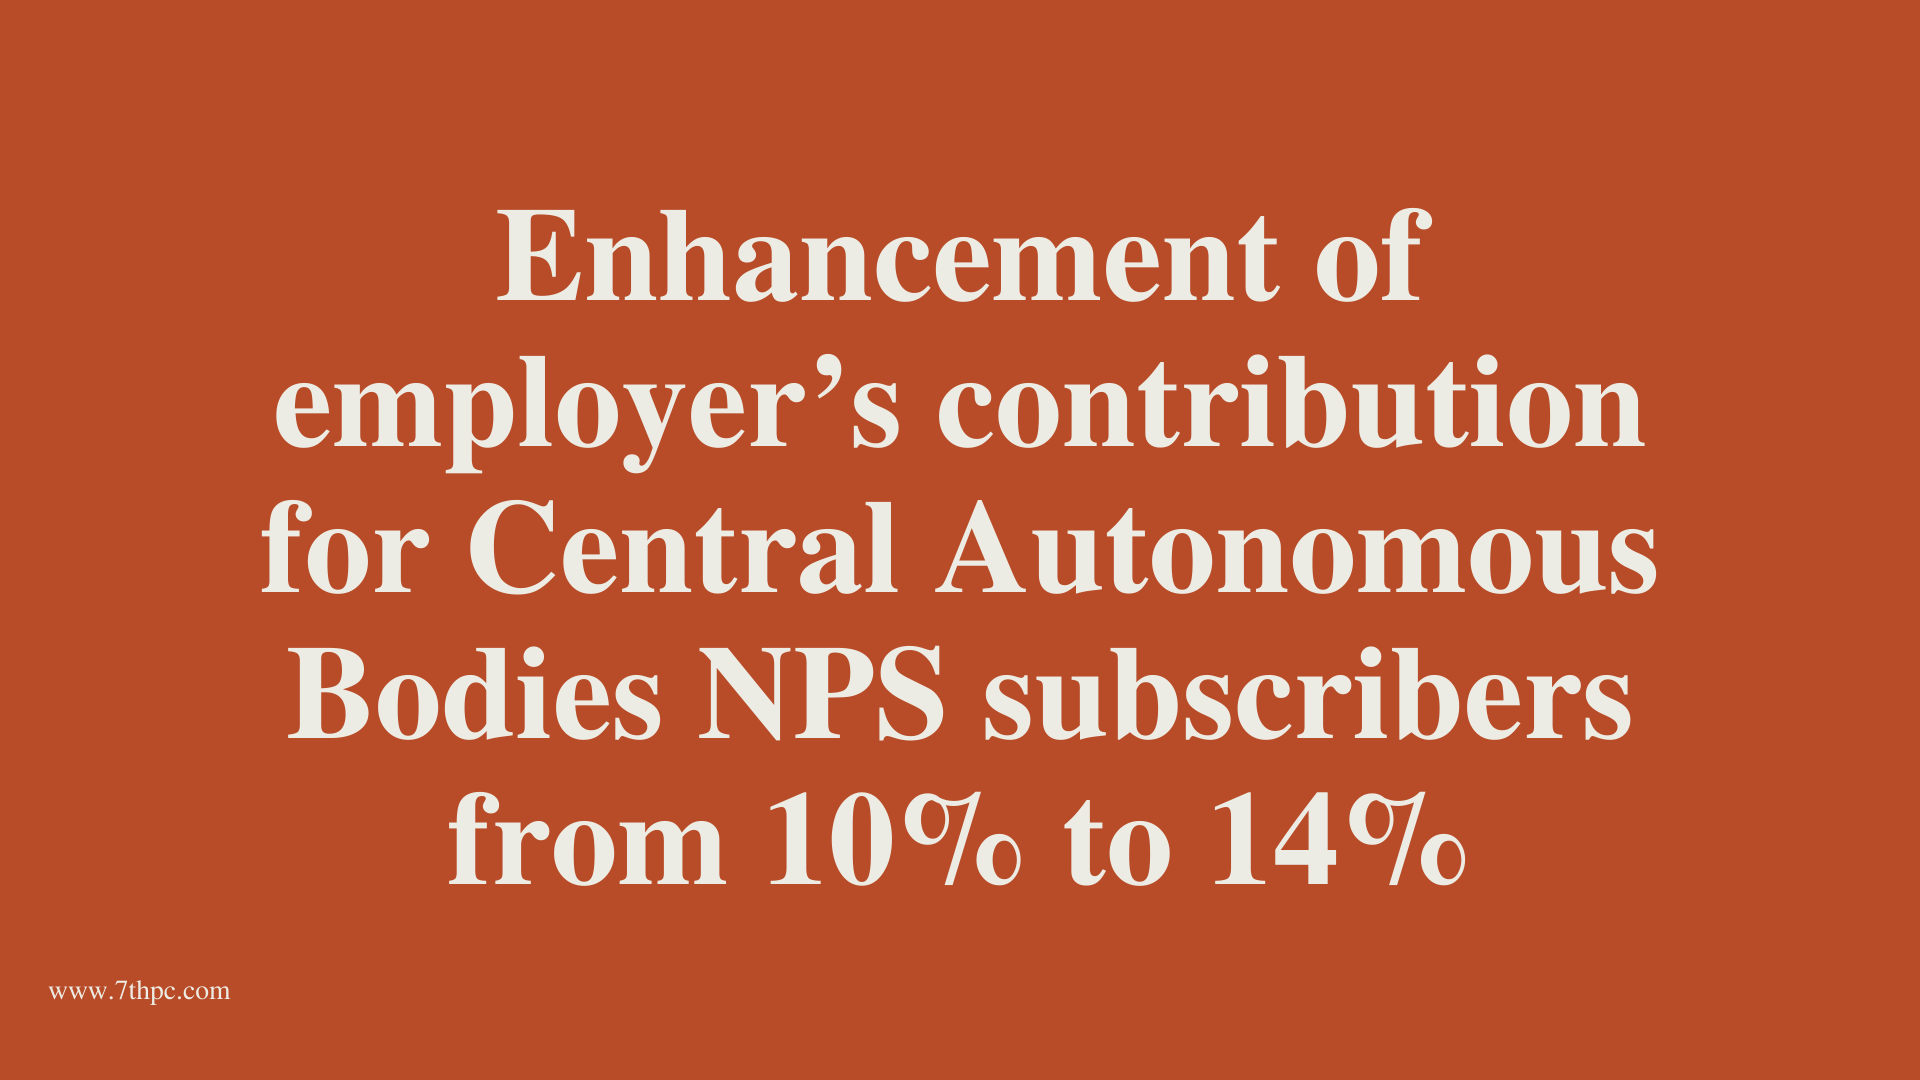 Enhancement of employer's contribution for Central Autonomous Bodies NPS subscribers from 10% to 14%